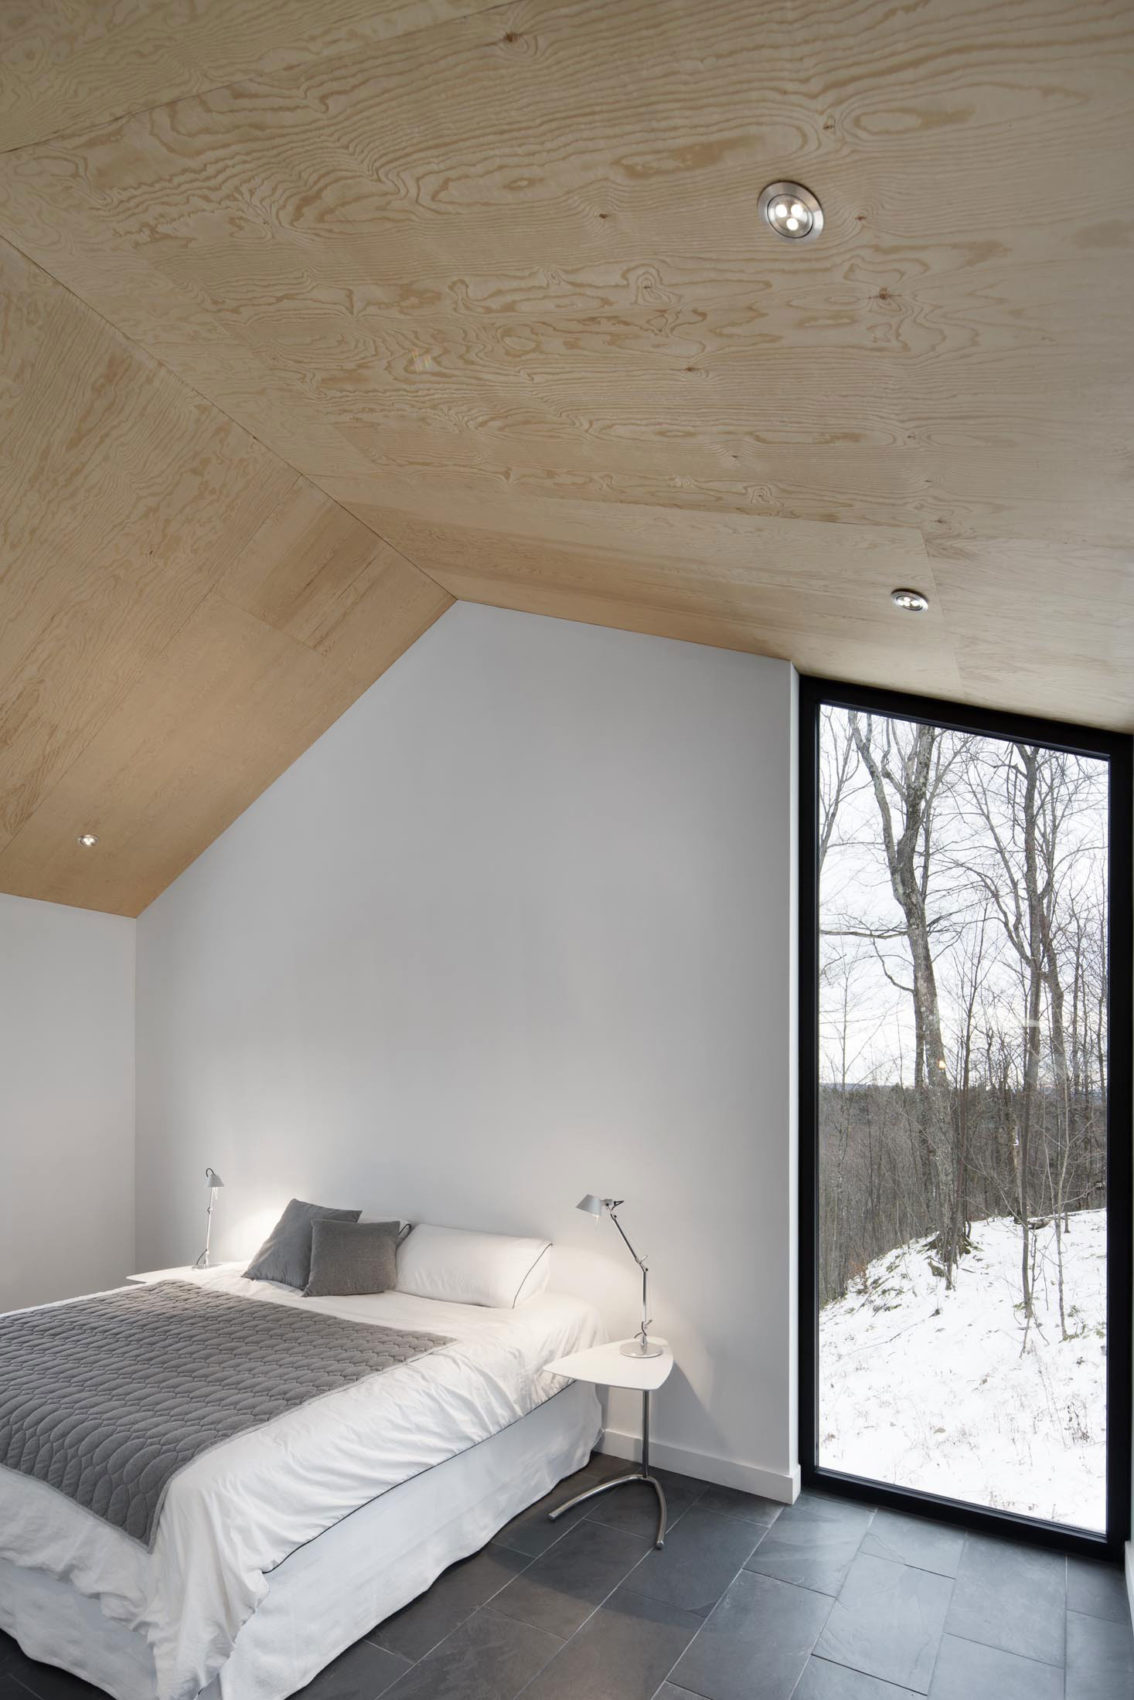 Bolton Residence by NatureHumaine (19)